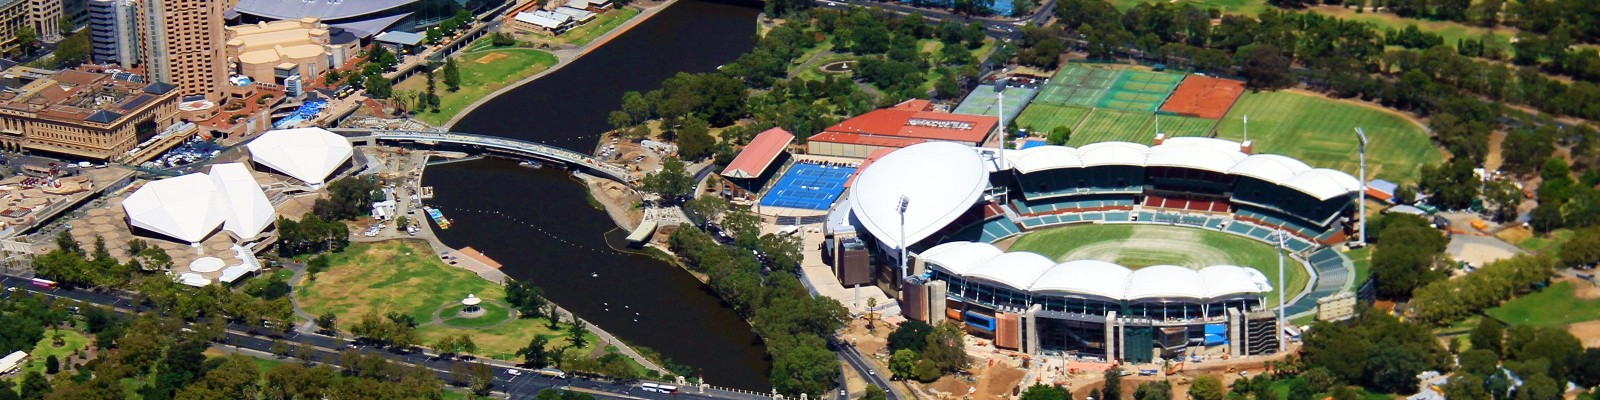 adelaide oval aerial homepage